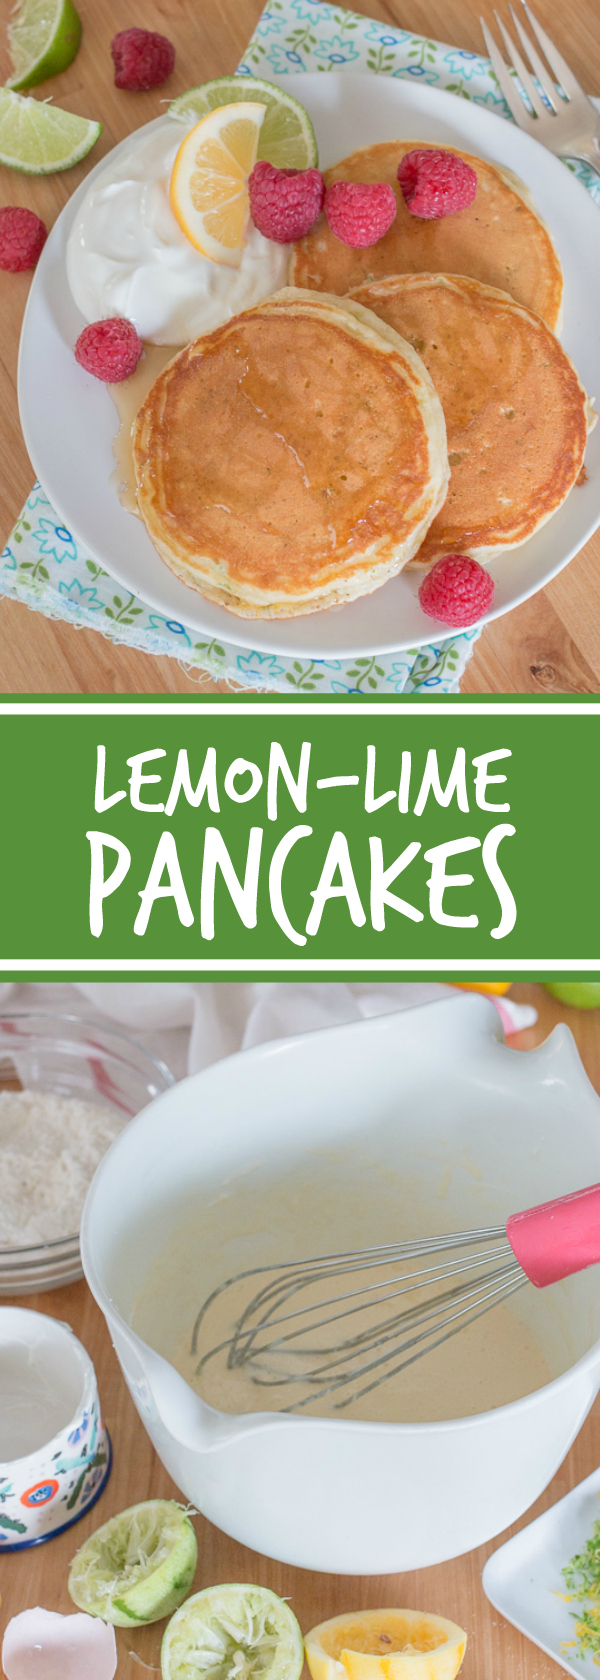 Add some zing to your breakfast routine with these bright and flavorful lemon-lime pancakes. While this simple recipe comes together quickly, it makes breakfast feel like a special occasion.